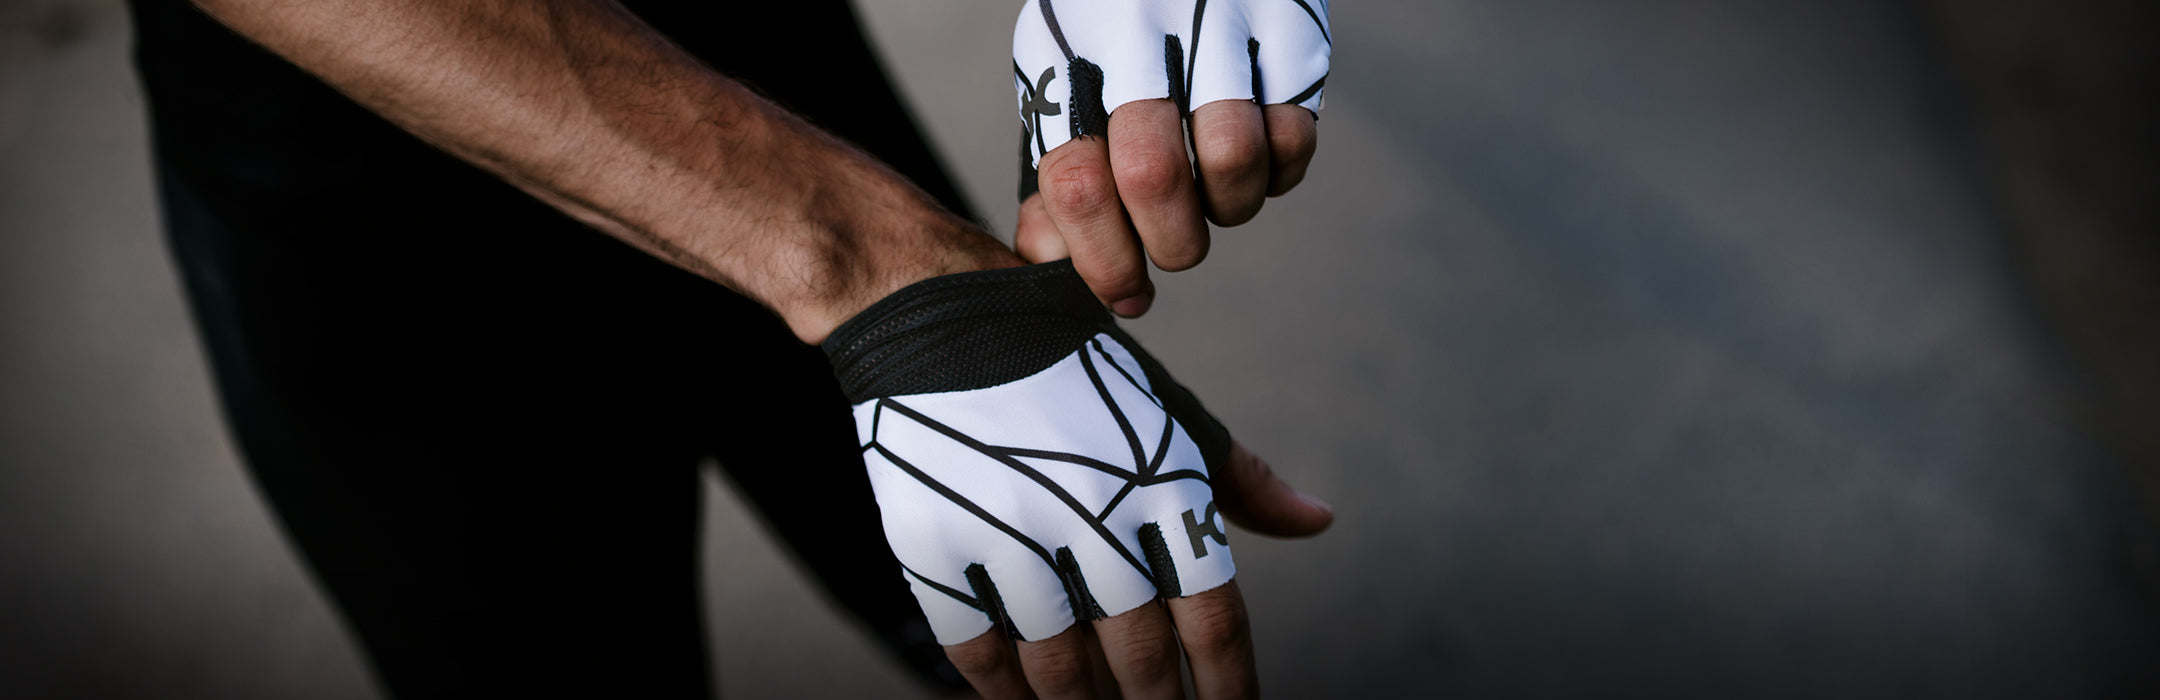 KATUSHA Performance Apparel - Men's Cycling Gloves